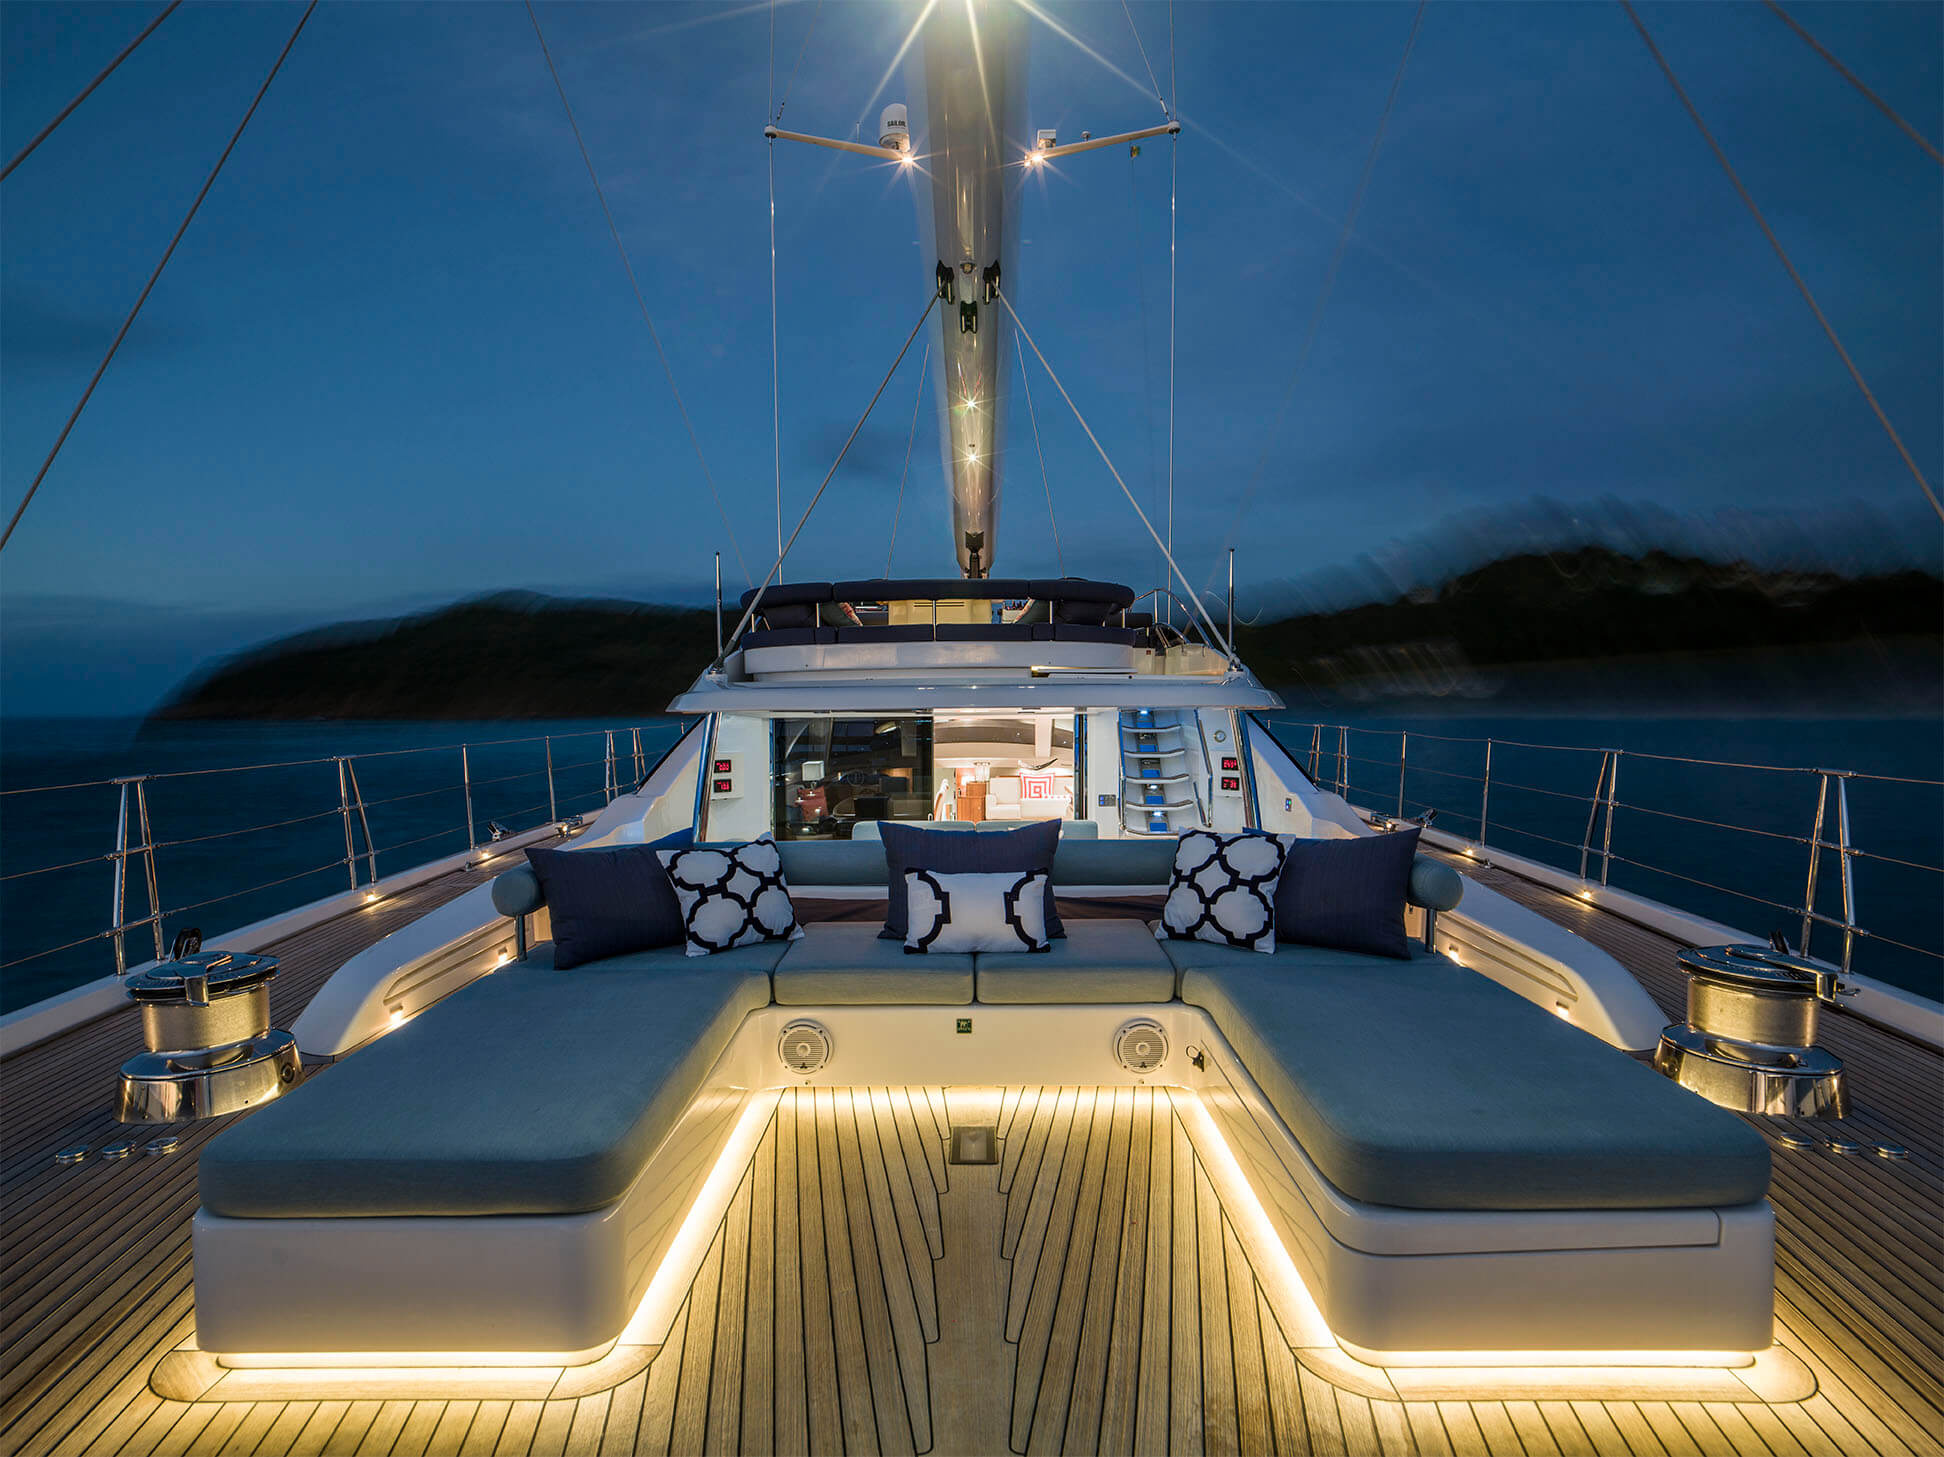 SY%20TWILIGHT%20-%20Aft%20deck%20seating